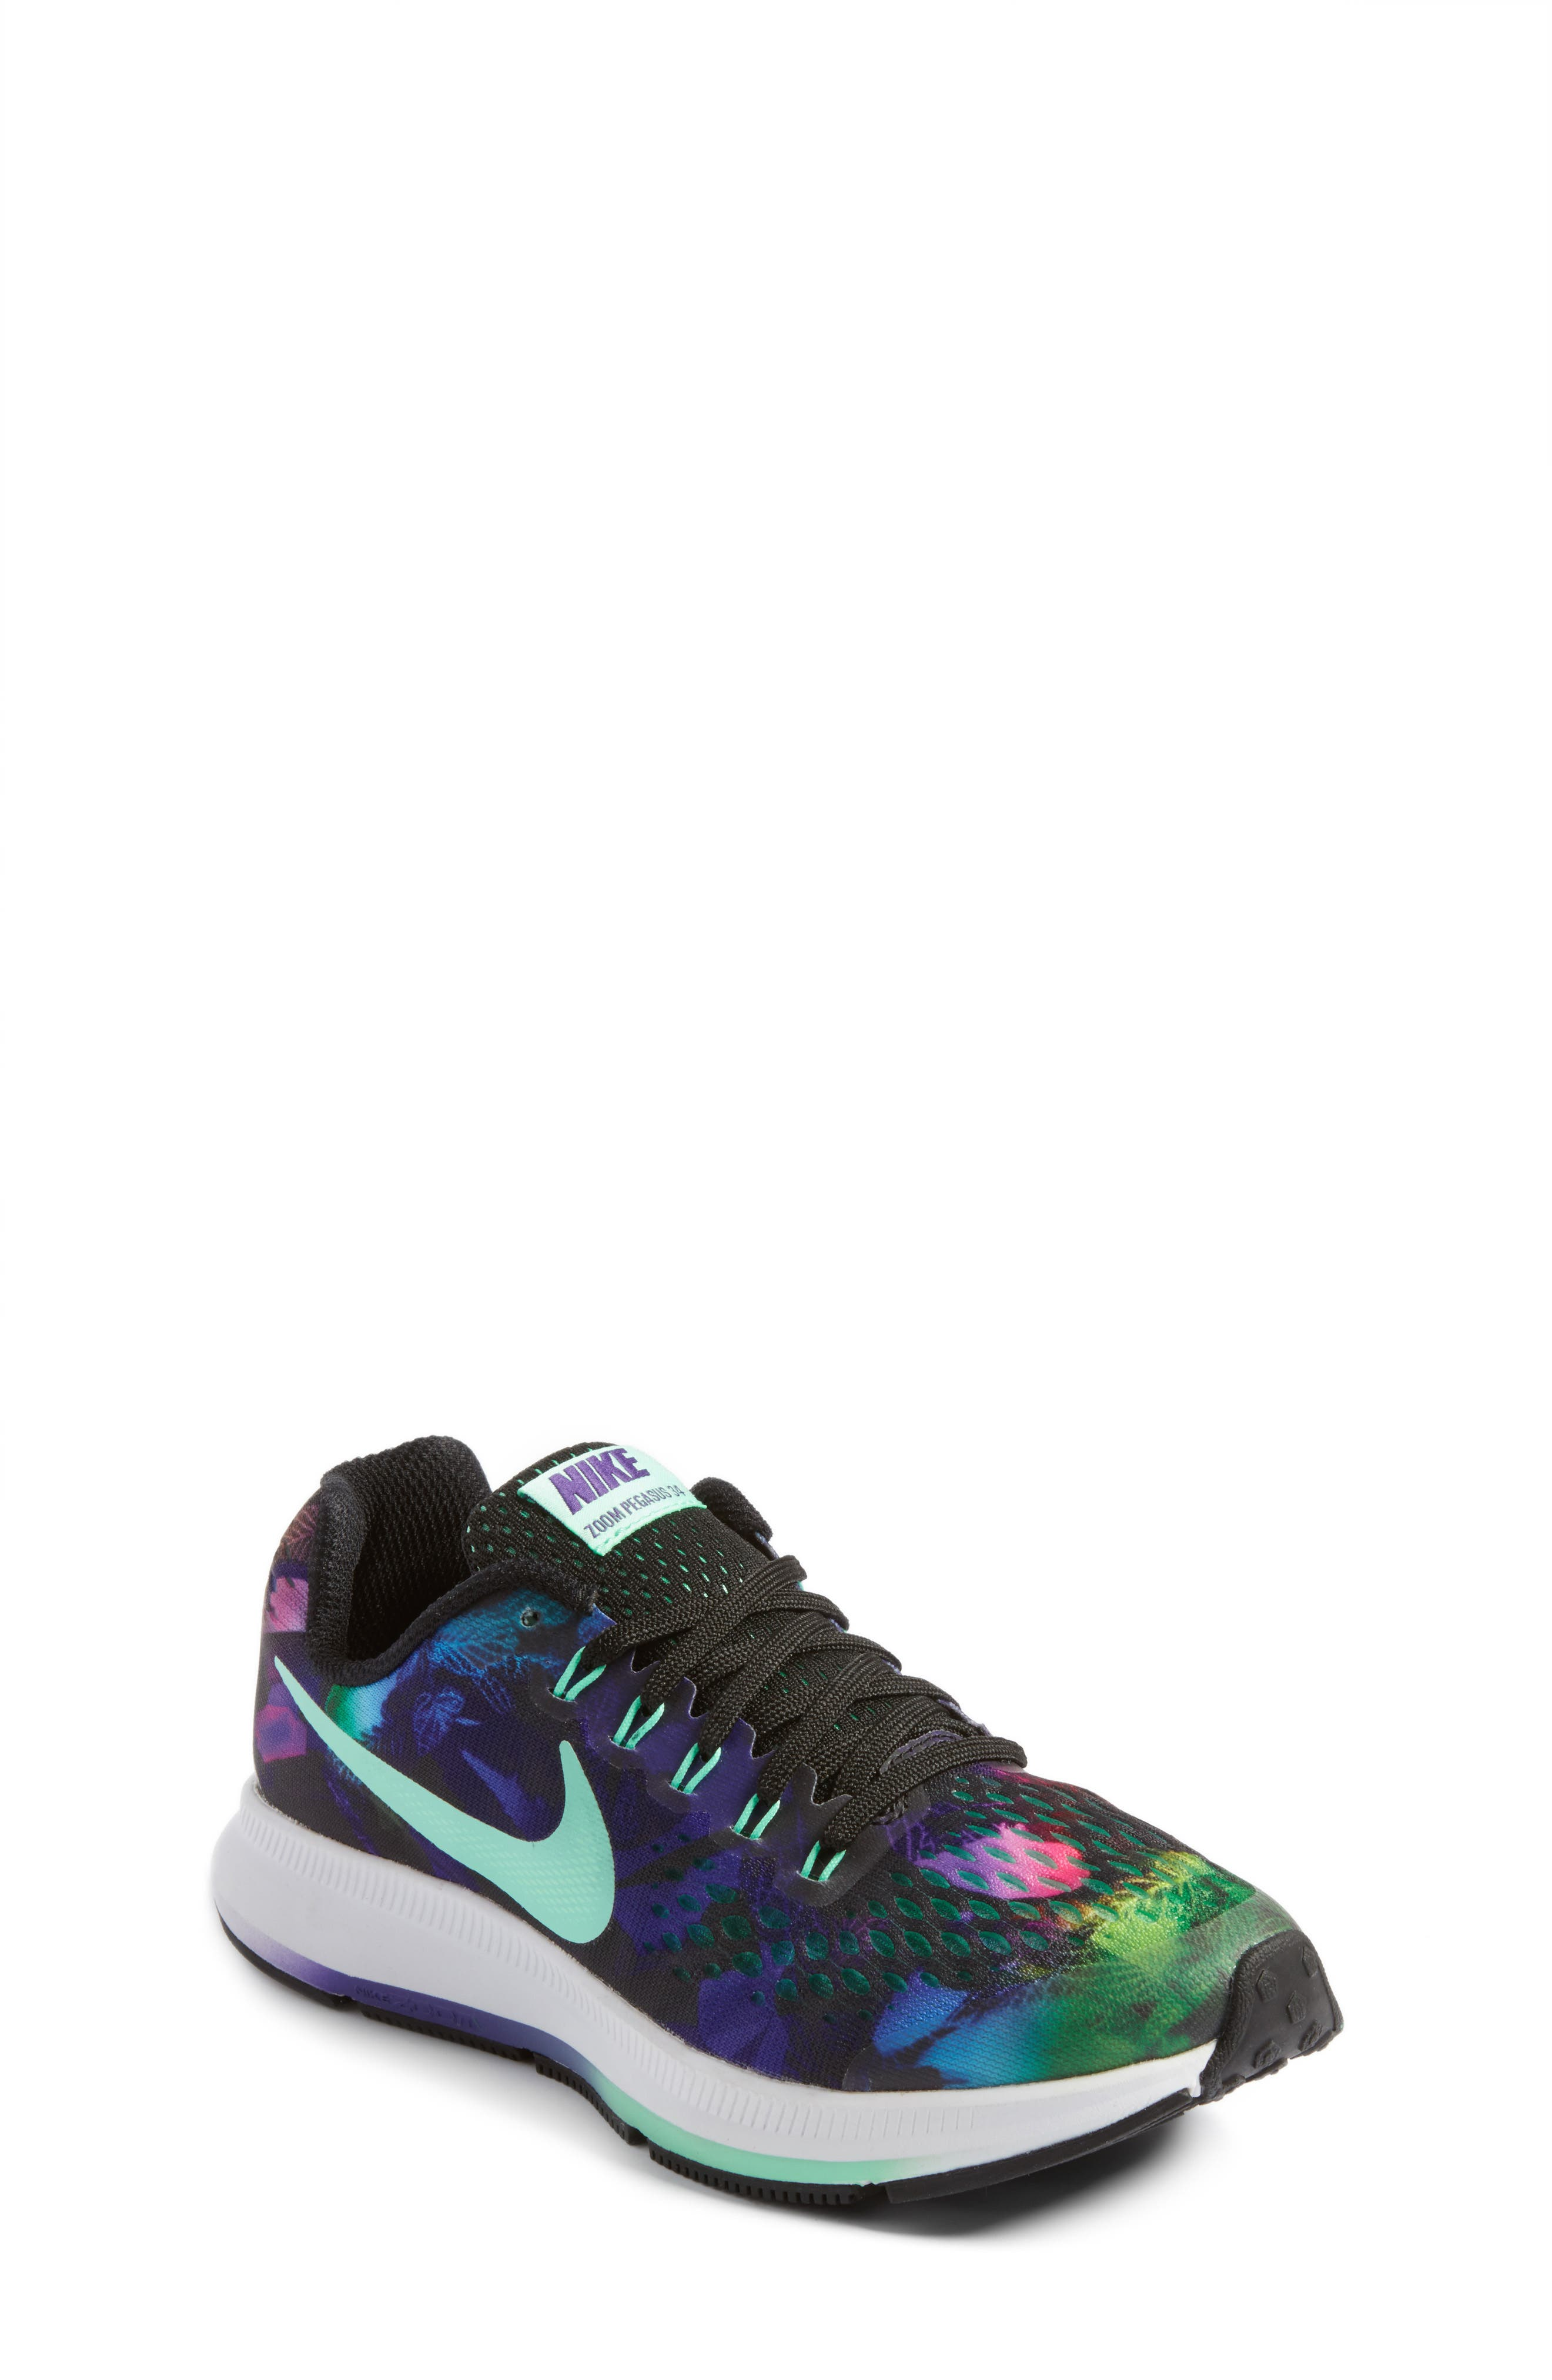 Zoom Pegasus 34 Print Sneaker,                             Main thumbnail 1, color,                             001